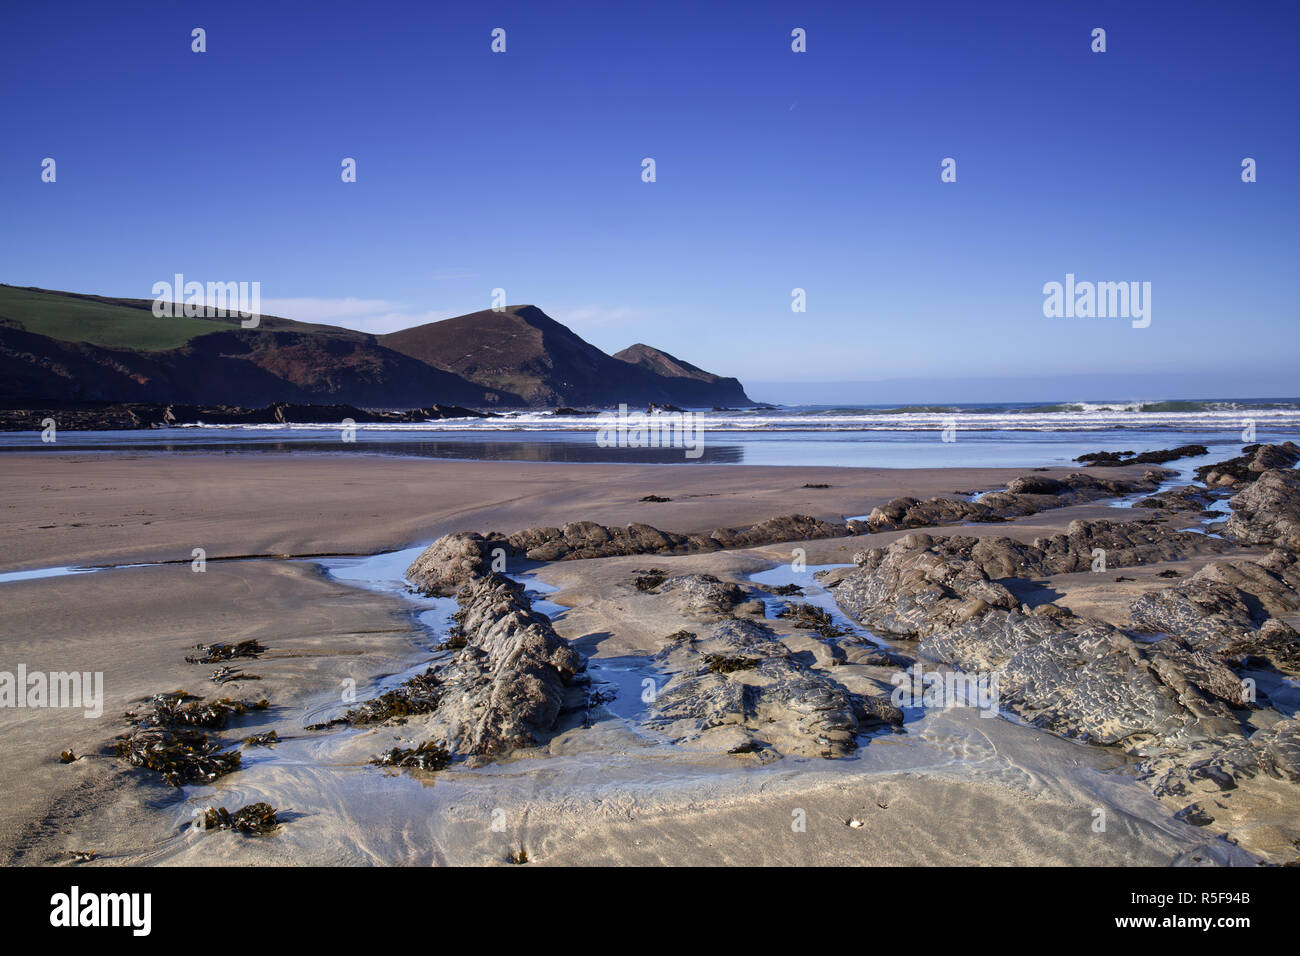 Crackington Formation, a geological feature at Crackington Haven in Cornwall, UK - Stock Image